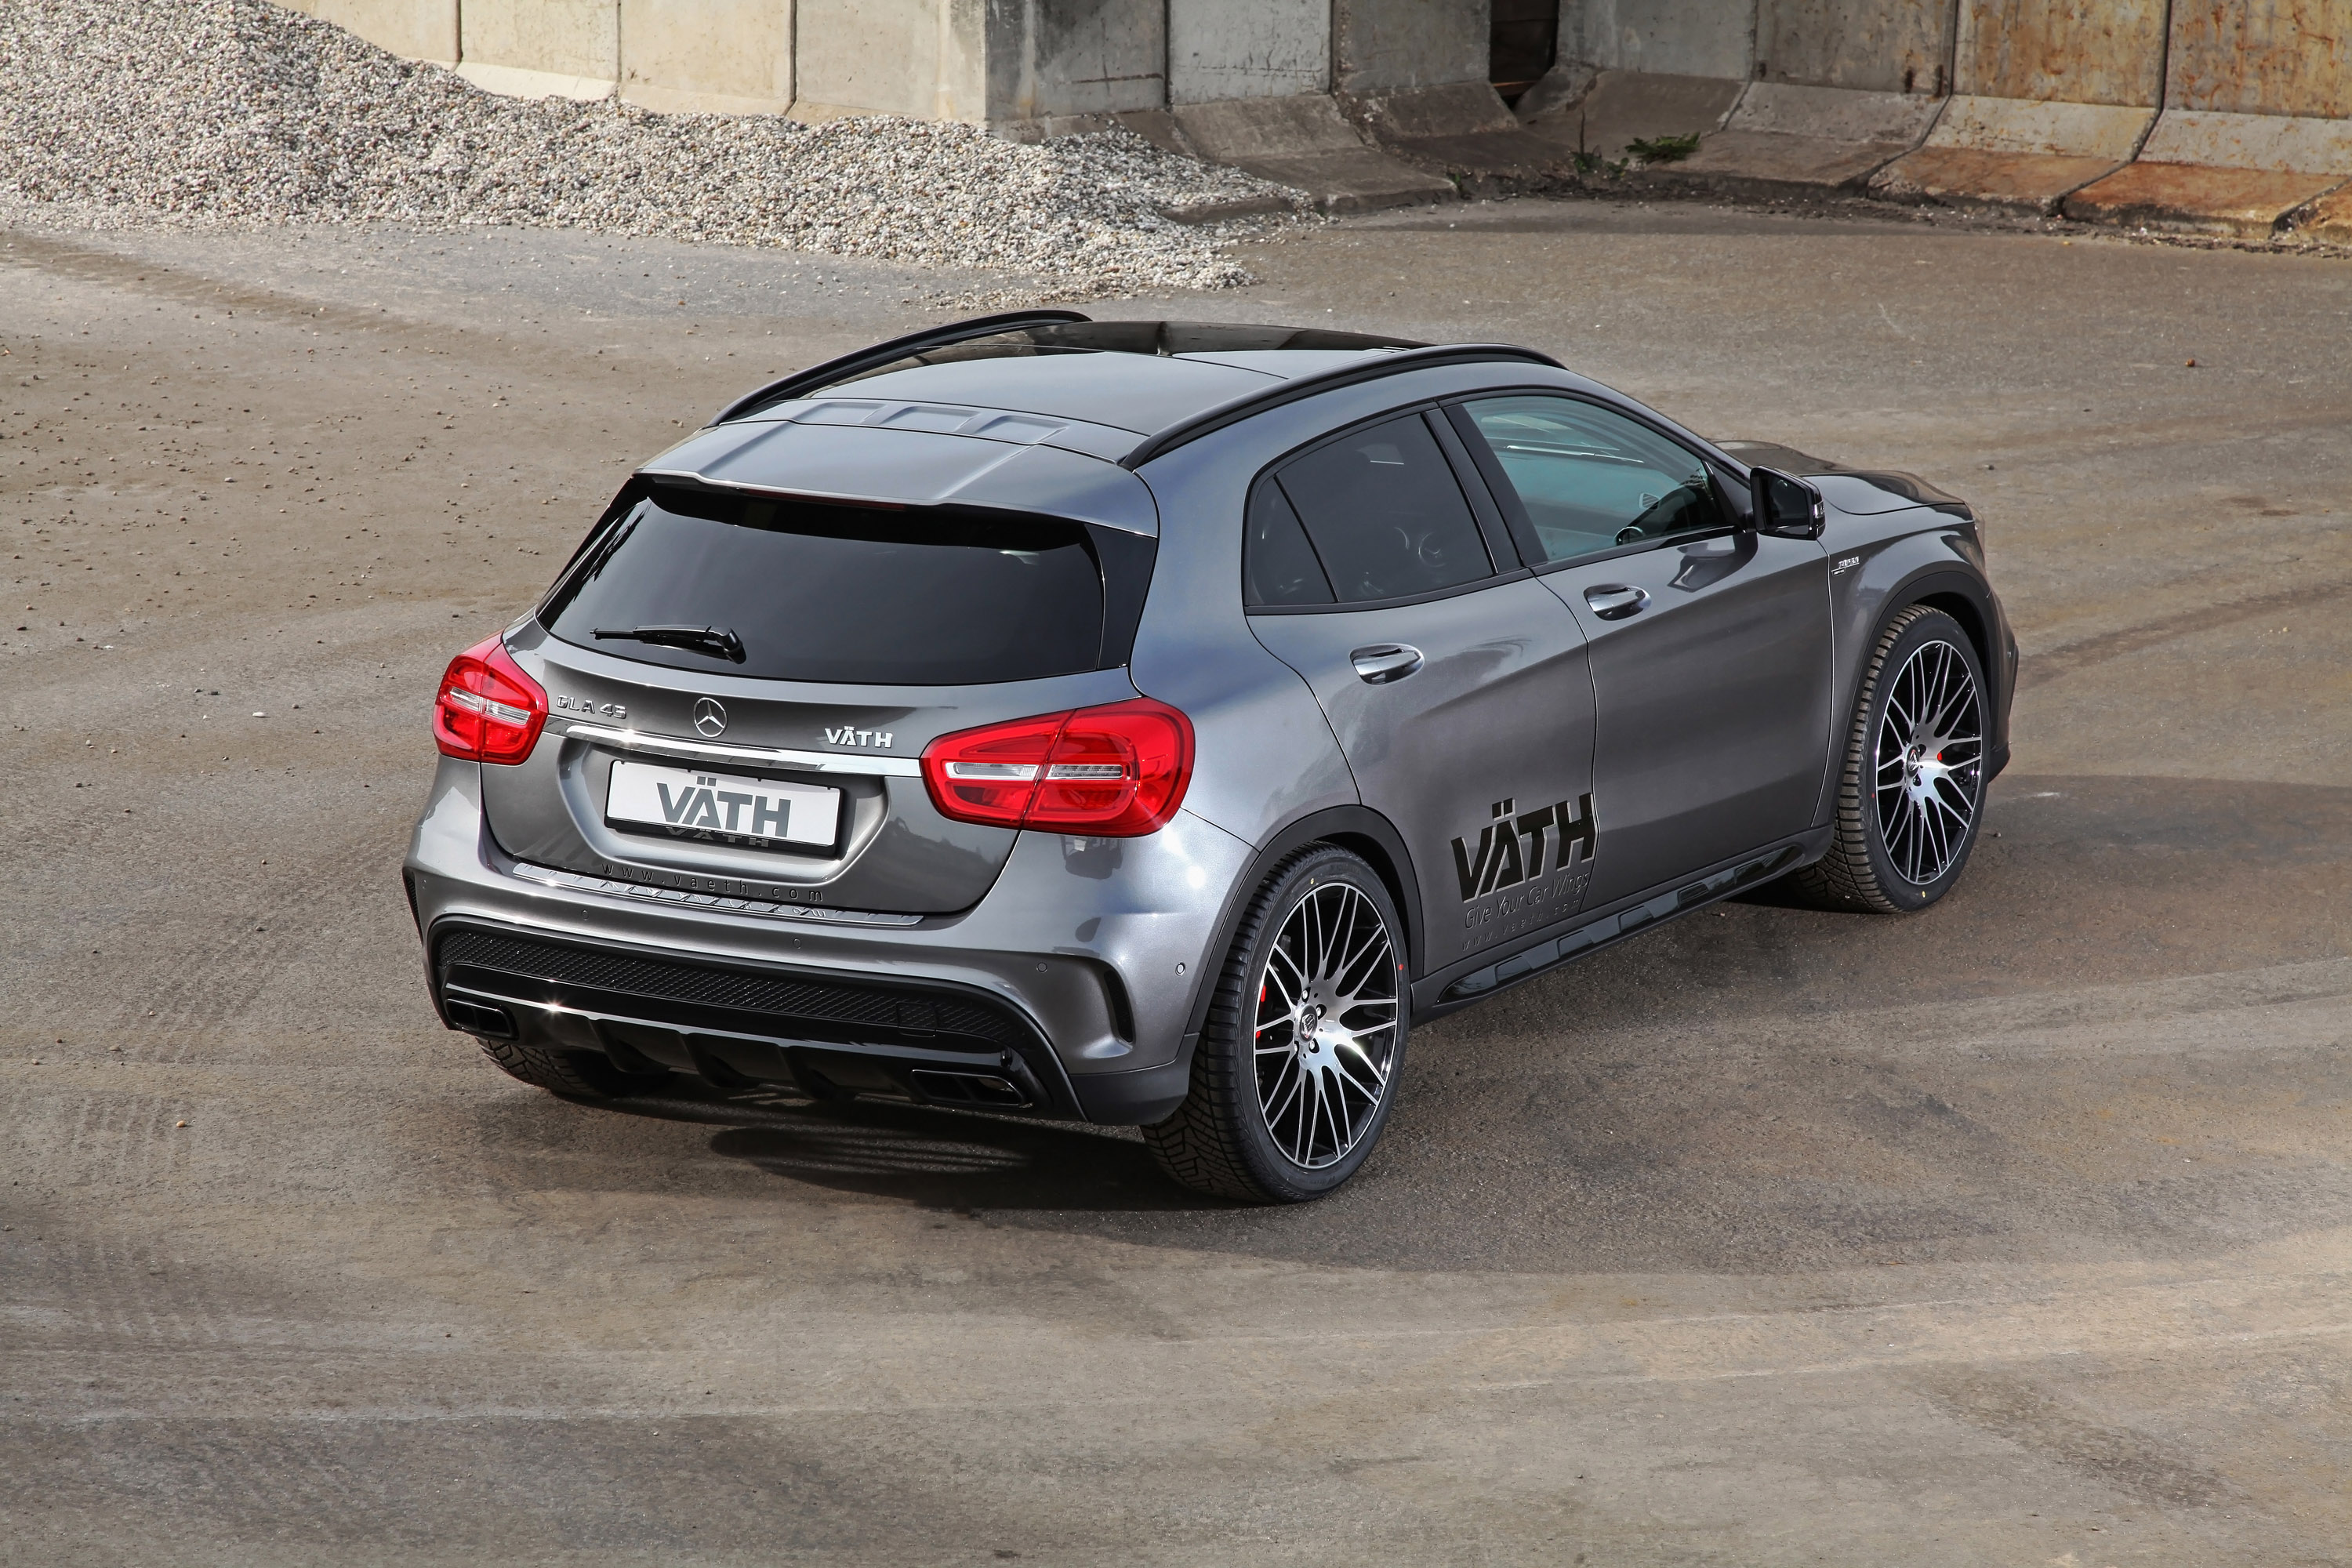 V 196 Th Creates More Powerful Mercedes Benz Gla 45 Amg